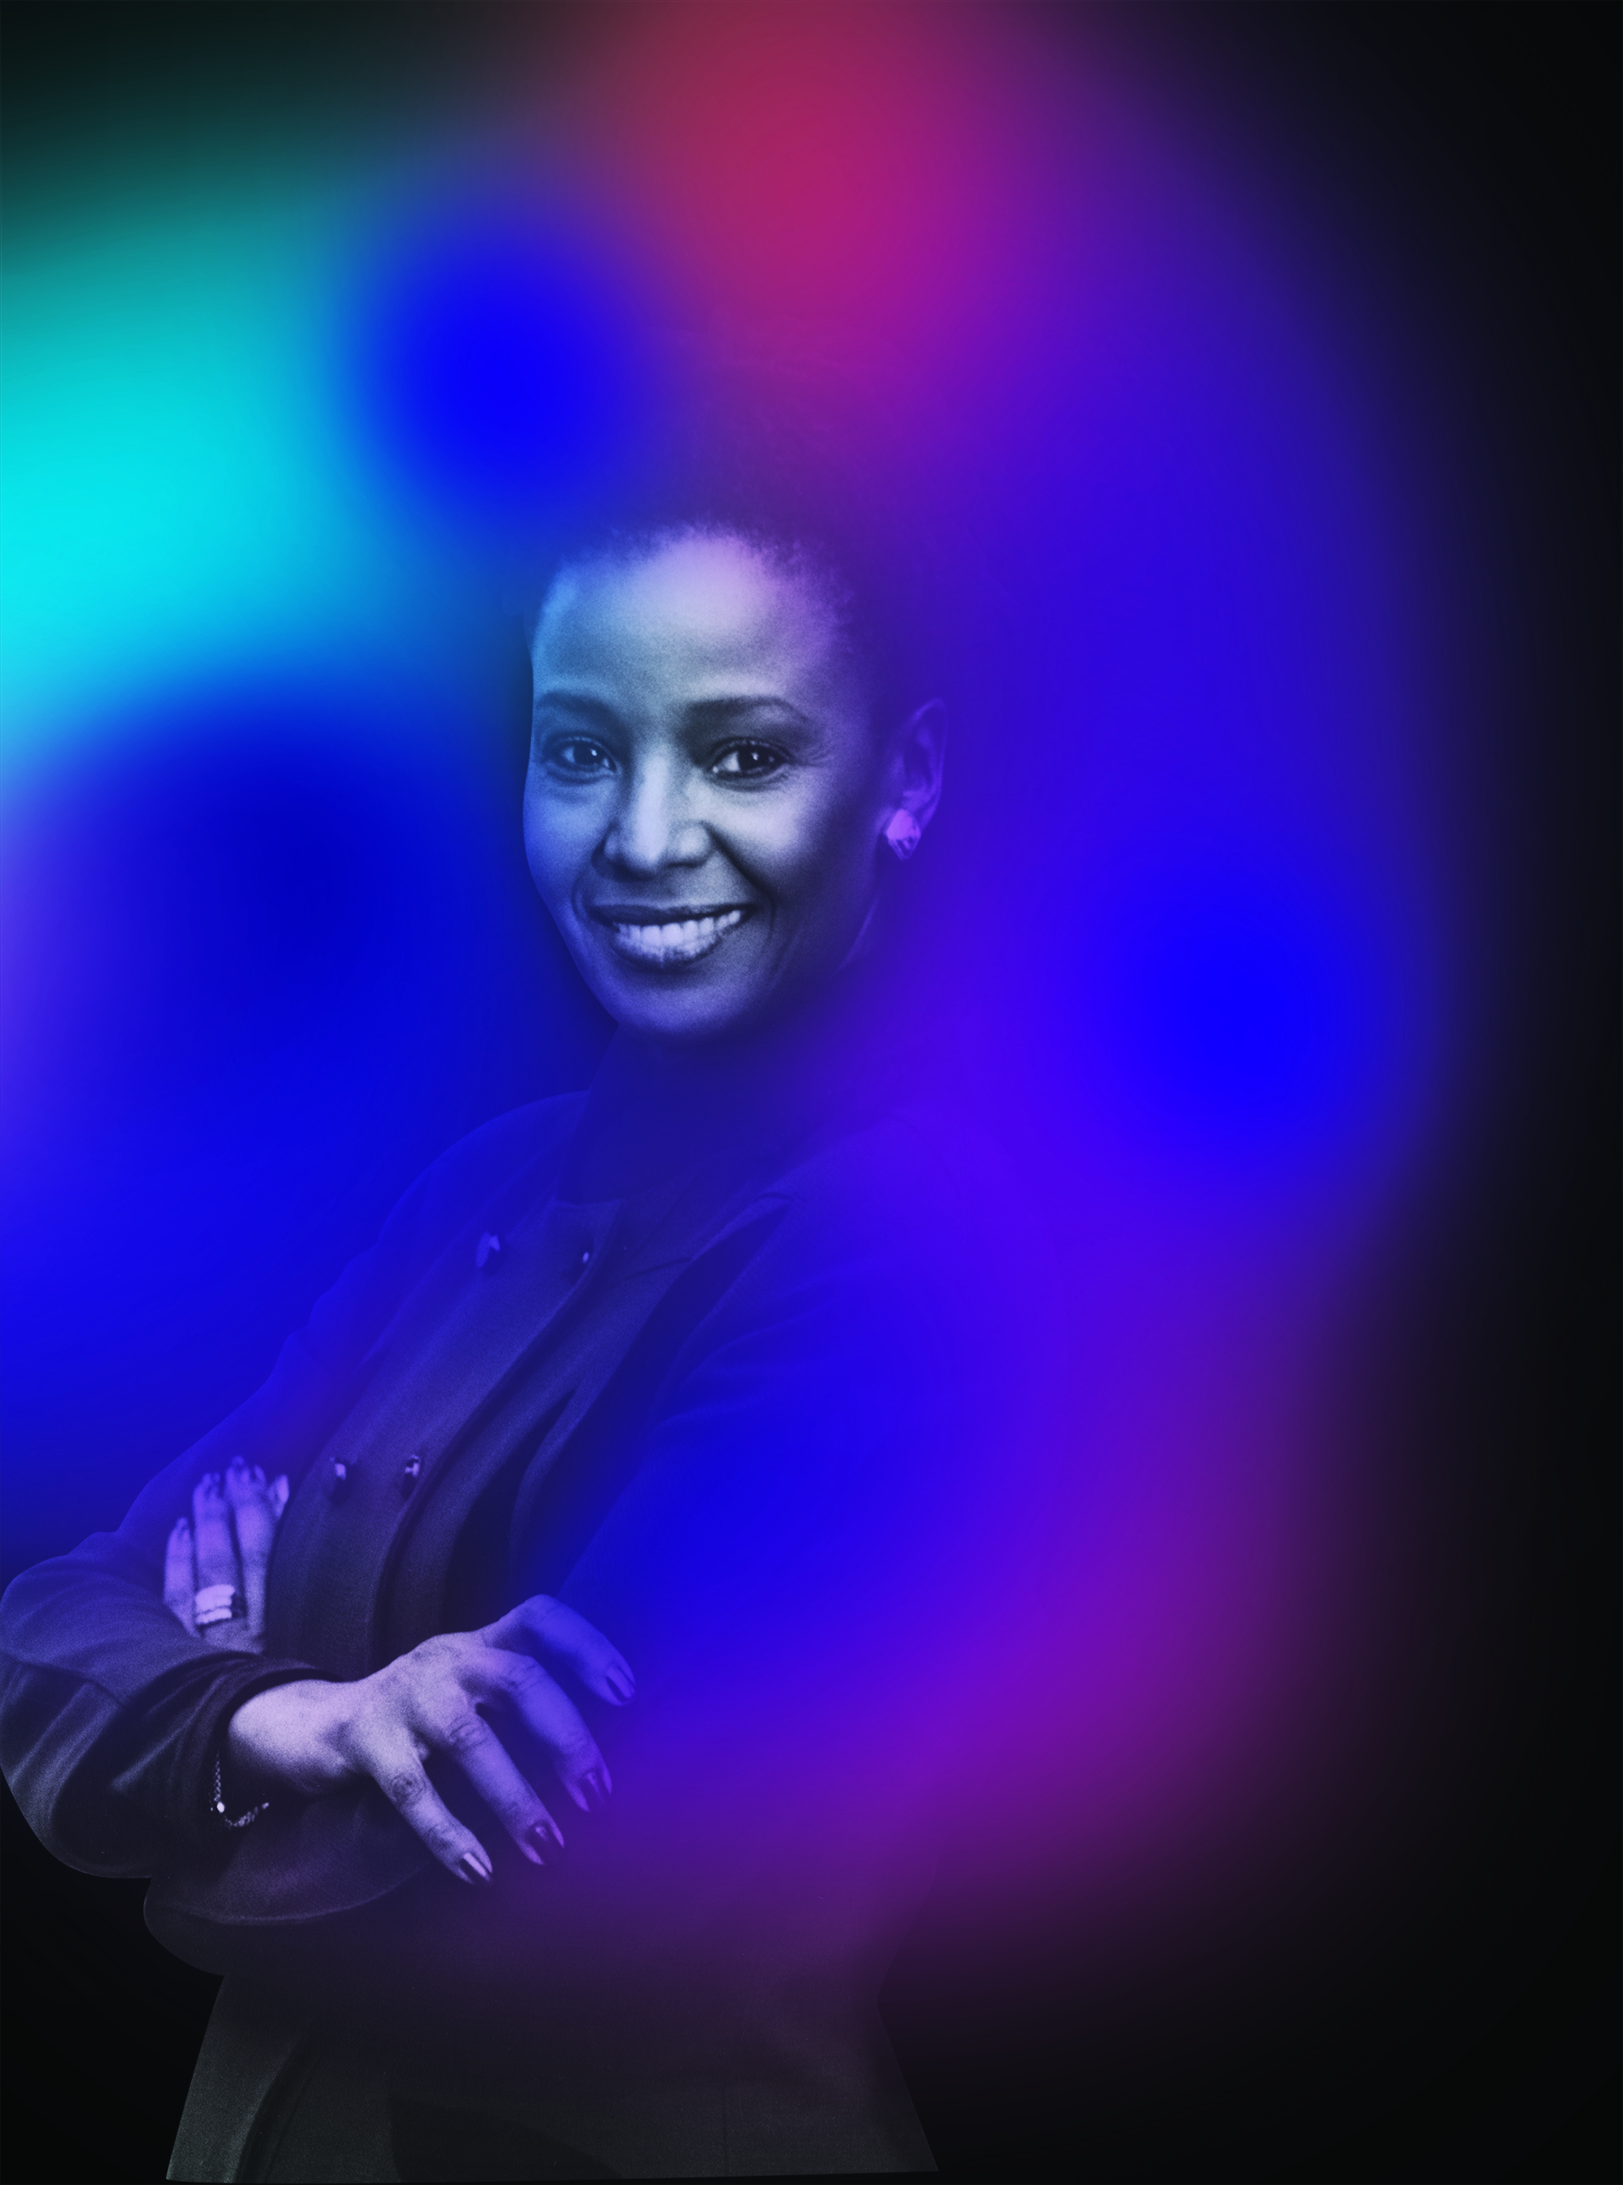 American restaurateur B. Smith with abstract aura photography colors